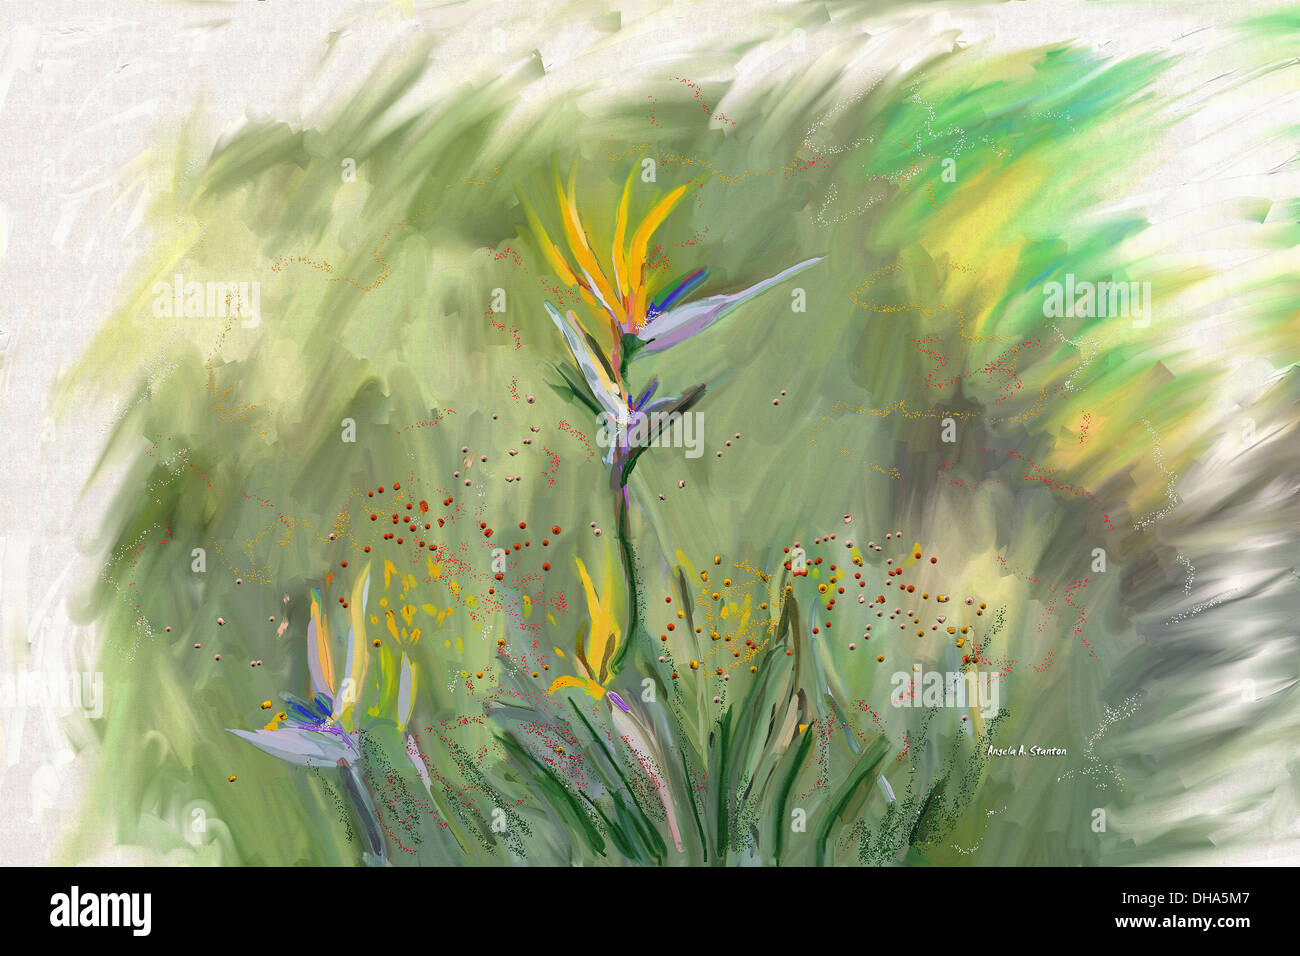 Computer Generated Image Of Flowers - Stock Image